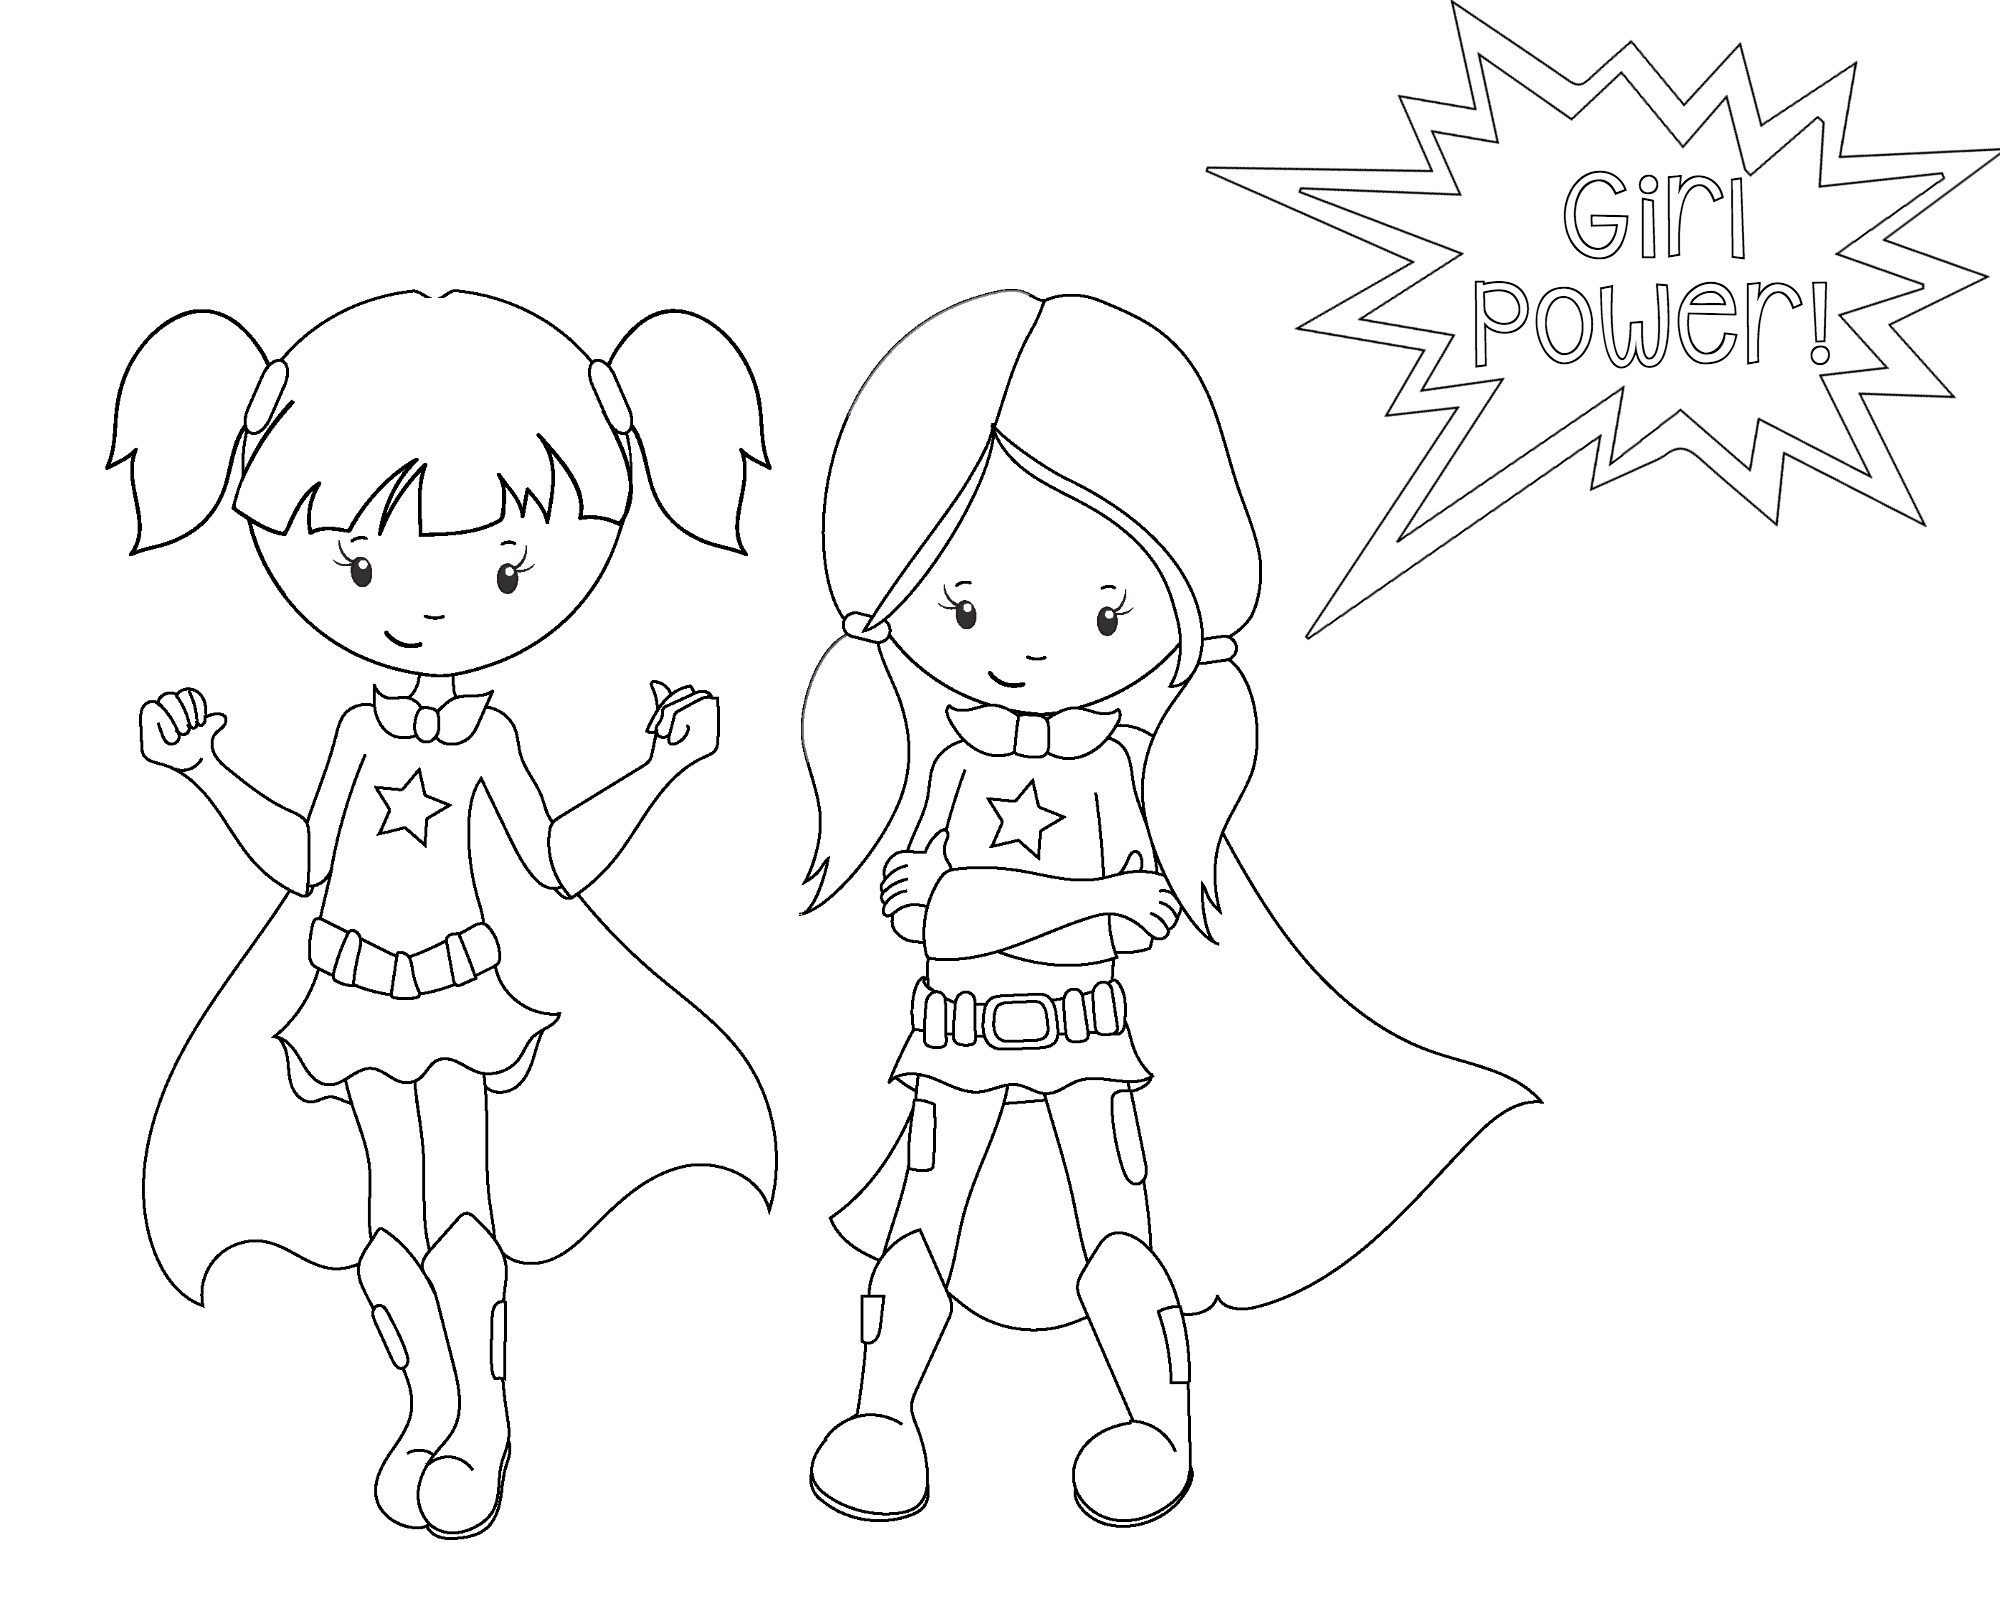 girl power superhero coloring page superhero3 - Coloring Pages Printable Girls